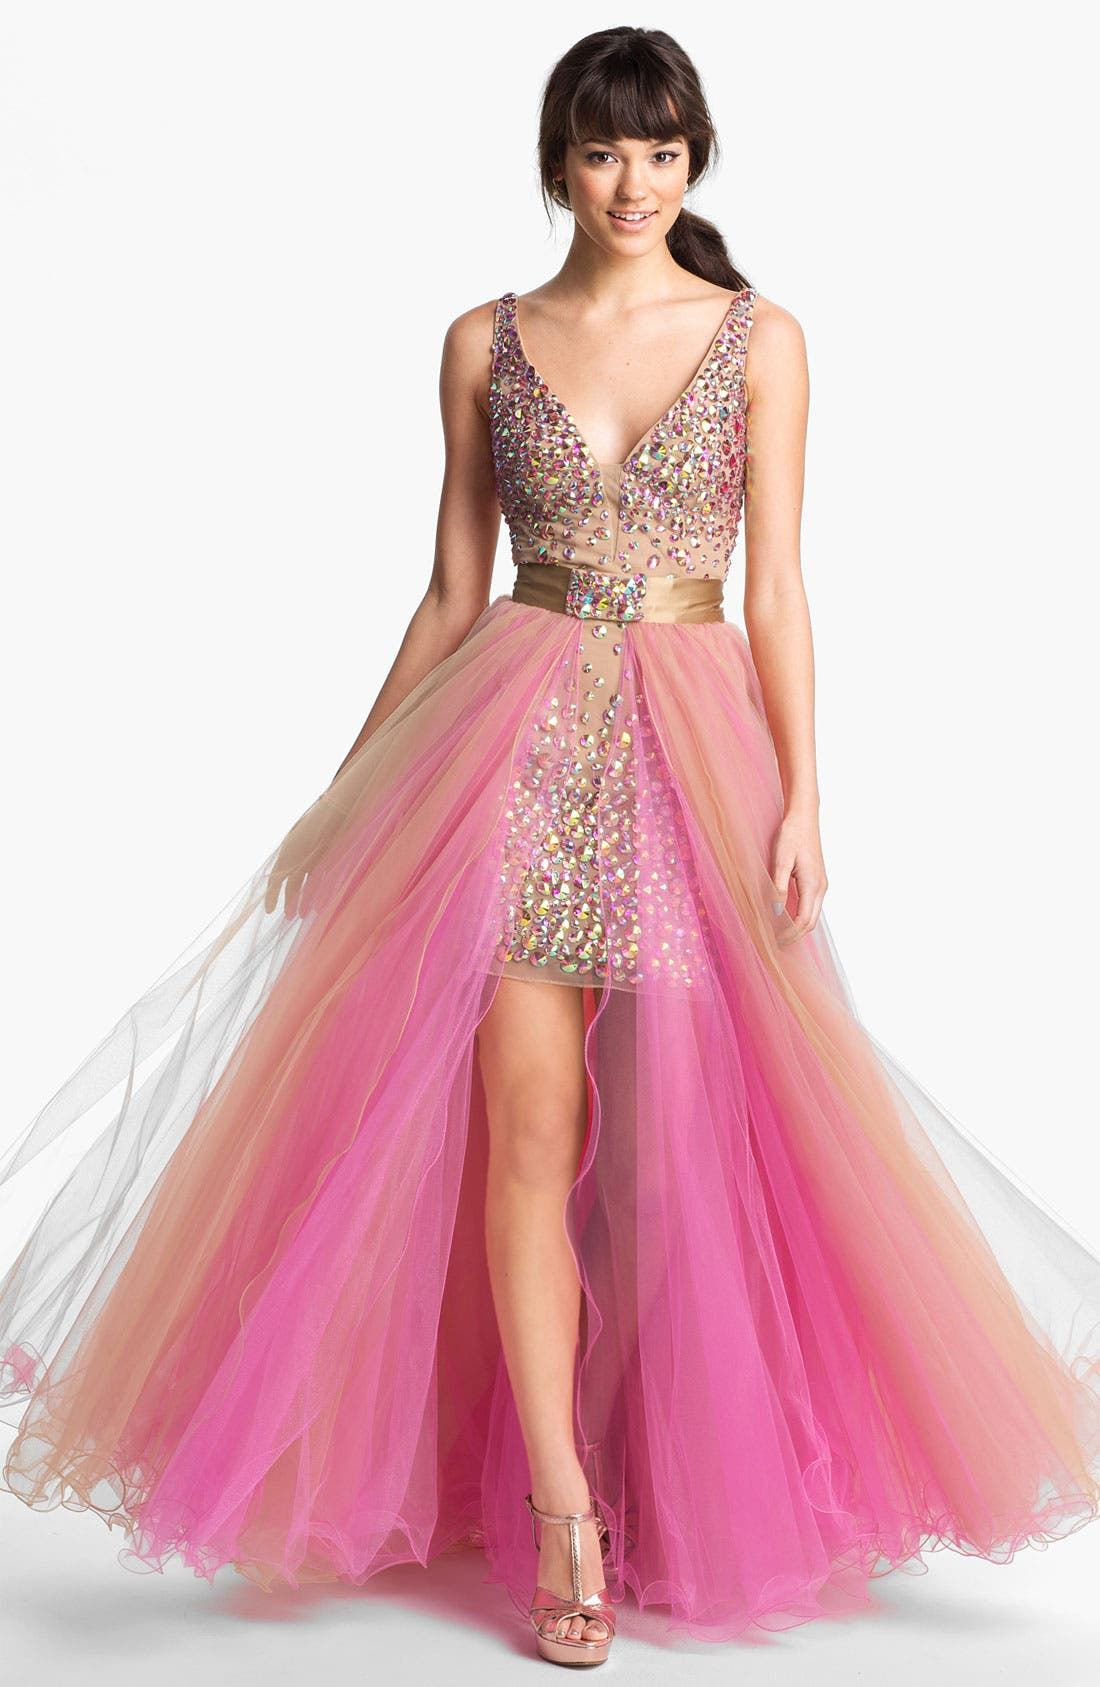 Alternate Image 1 Selected - Sherri Hill Beaded Tulle Overlay Dress (Online Exclusive)